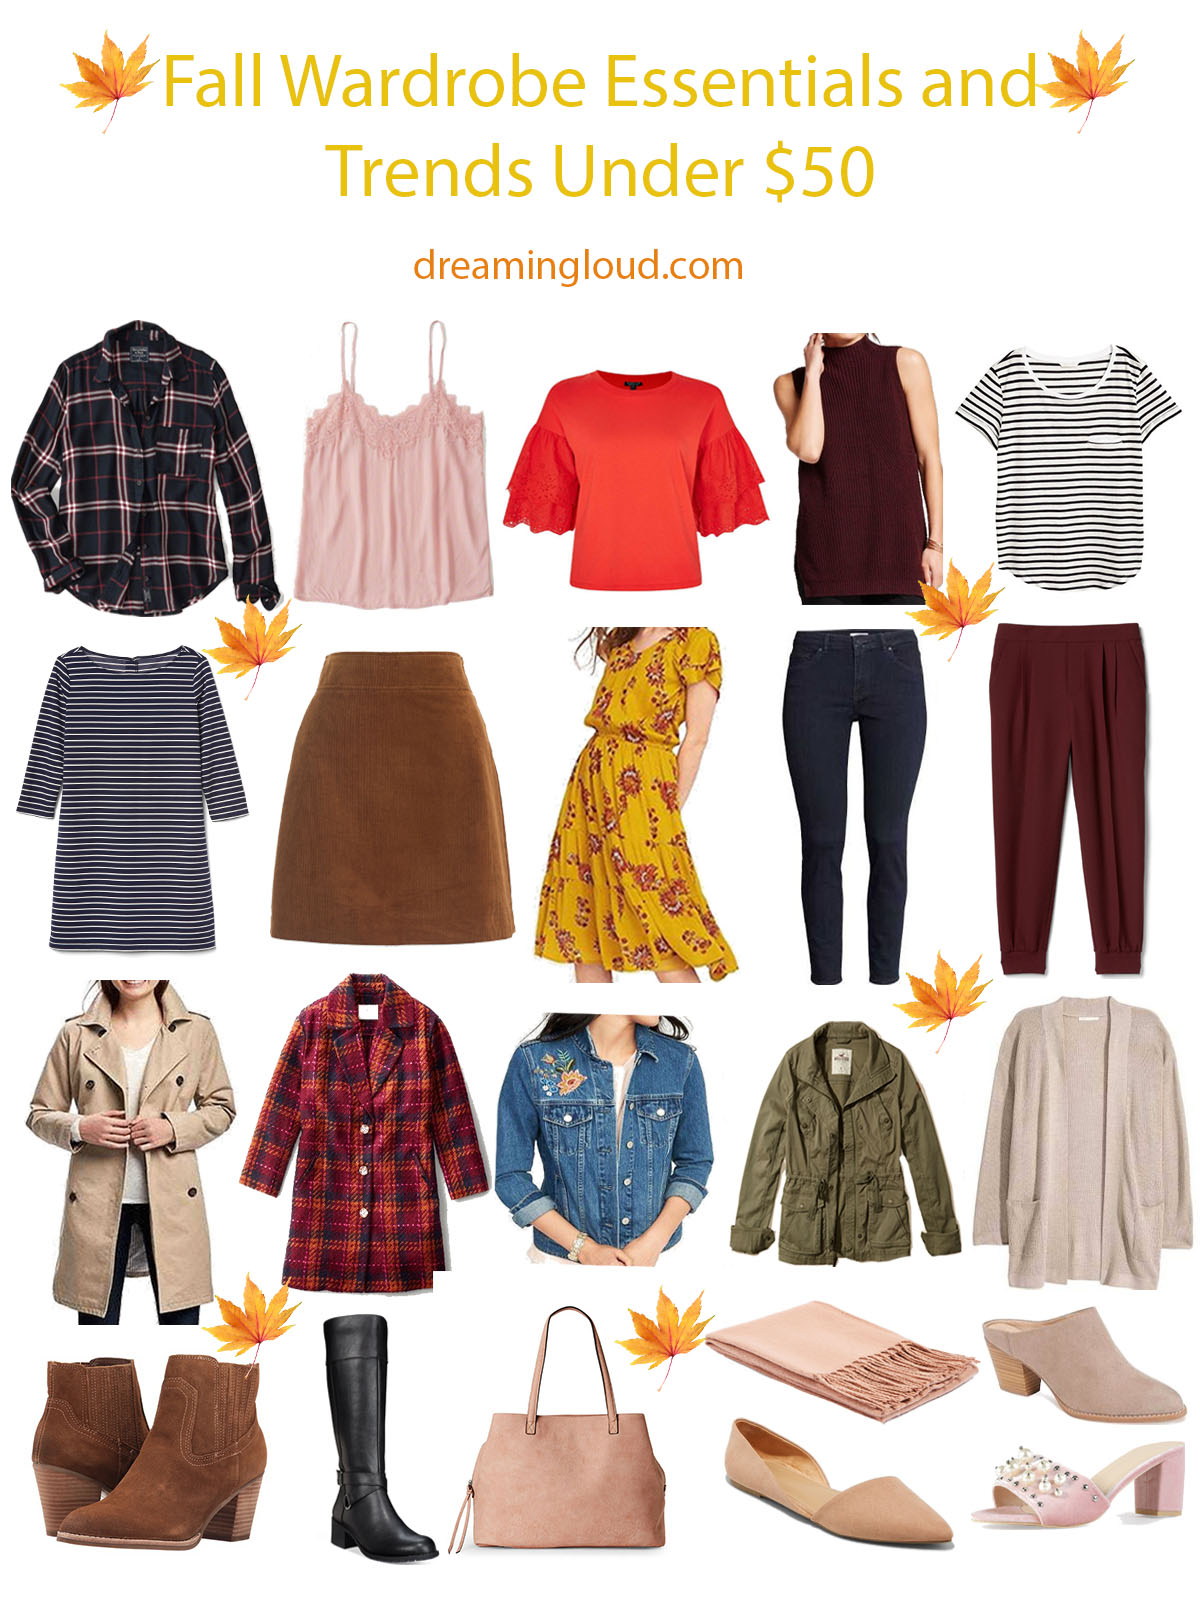 Fall Wardrobe Essentials and Trends Under $50 ...